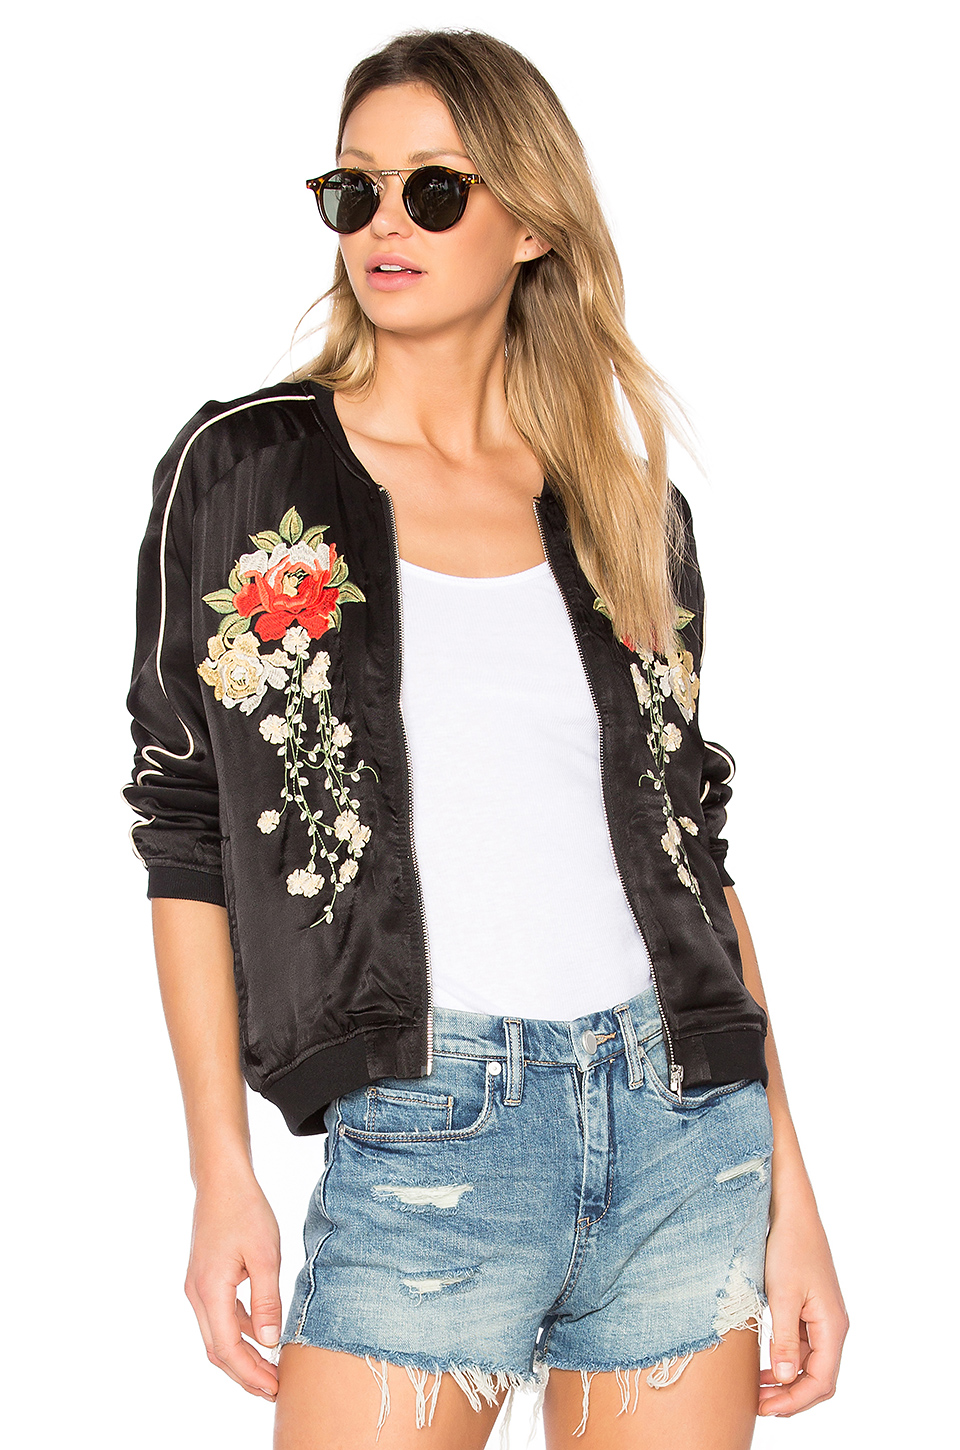 Embroidered Bomber Jacket  / Revolve Clothing / $128